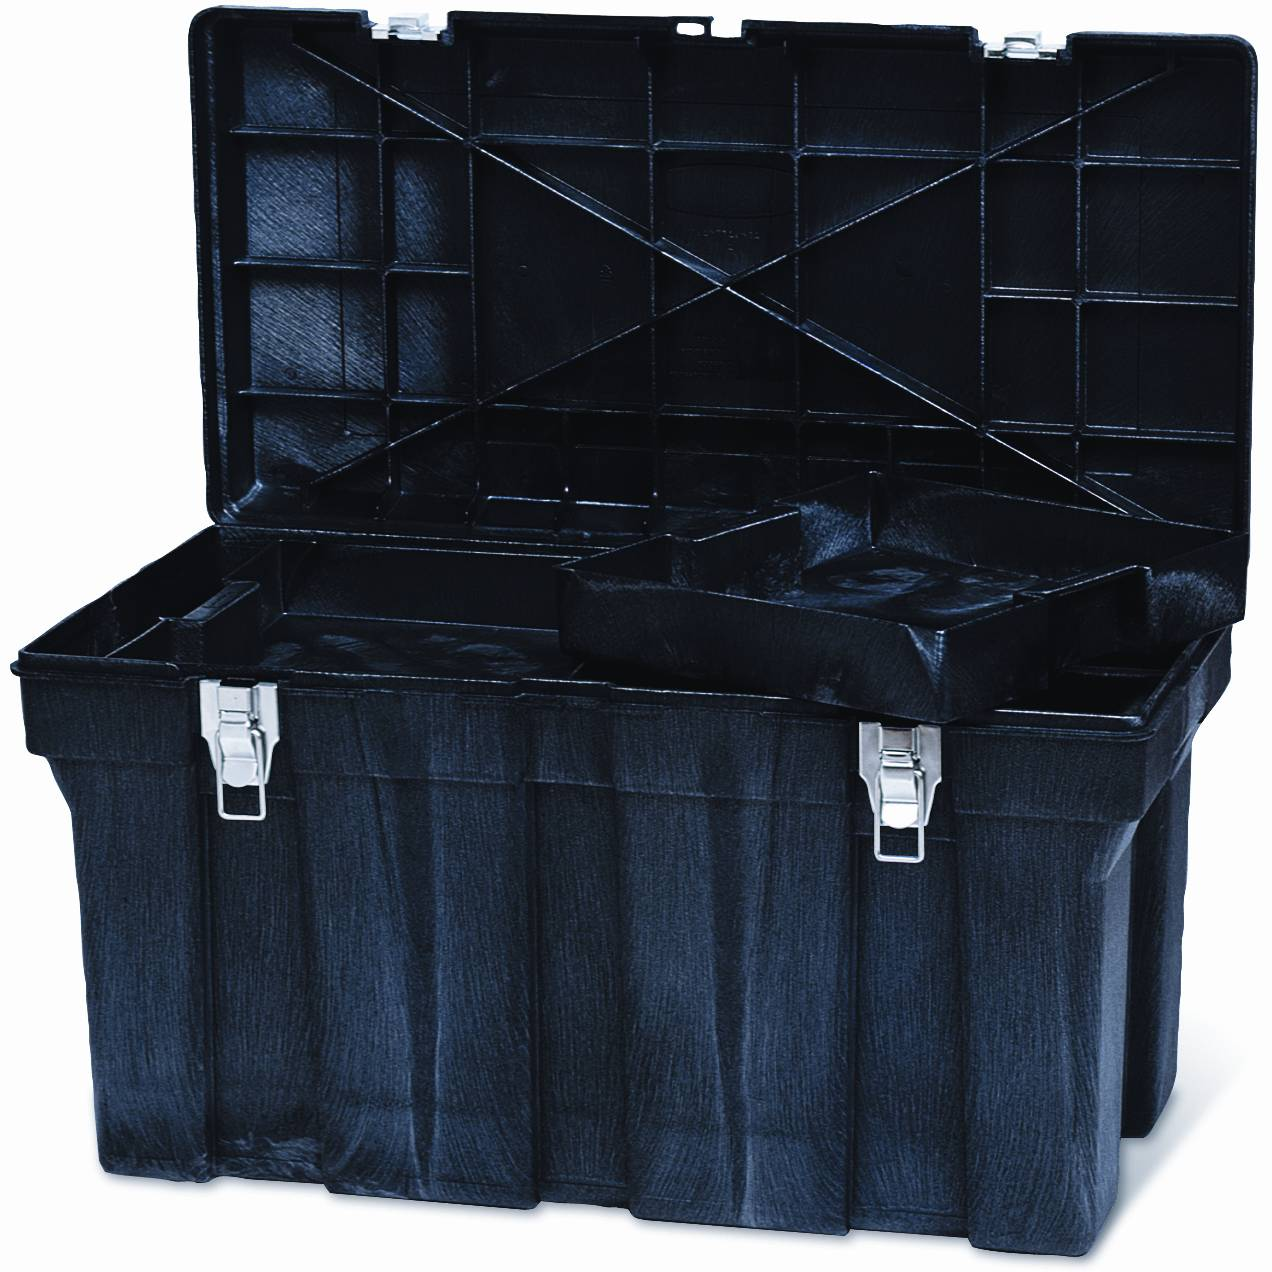 Rubbermaid 2620 BRUTE Container without Lid Pack of 6 Pails  |Rubbermaid Agricultural Products